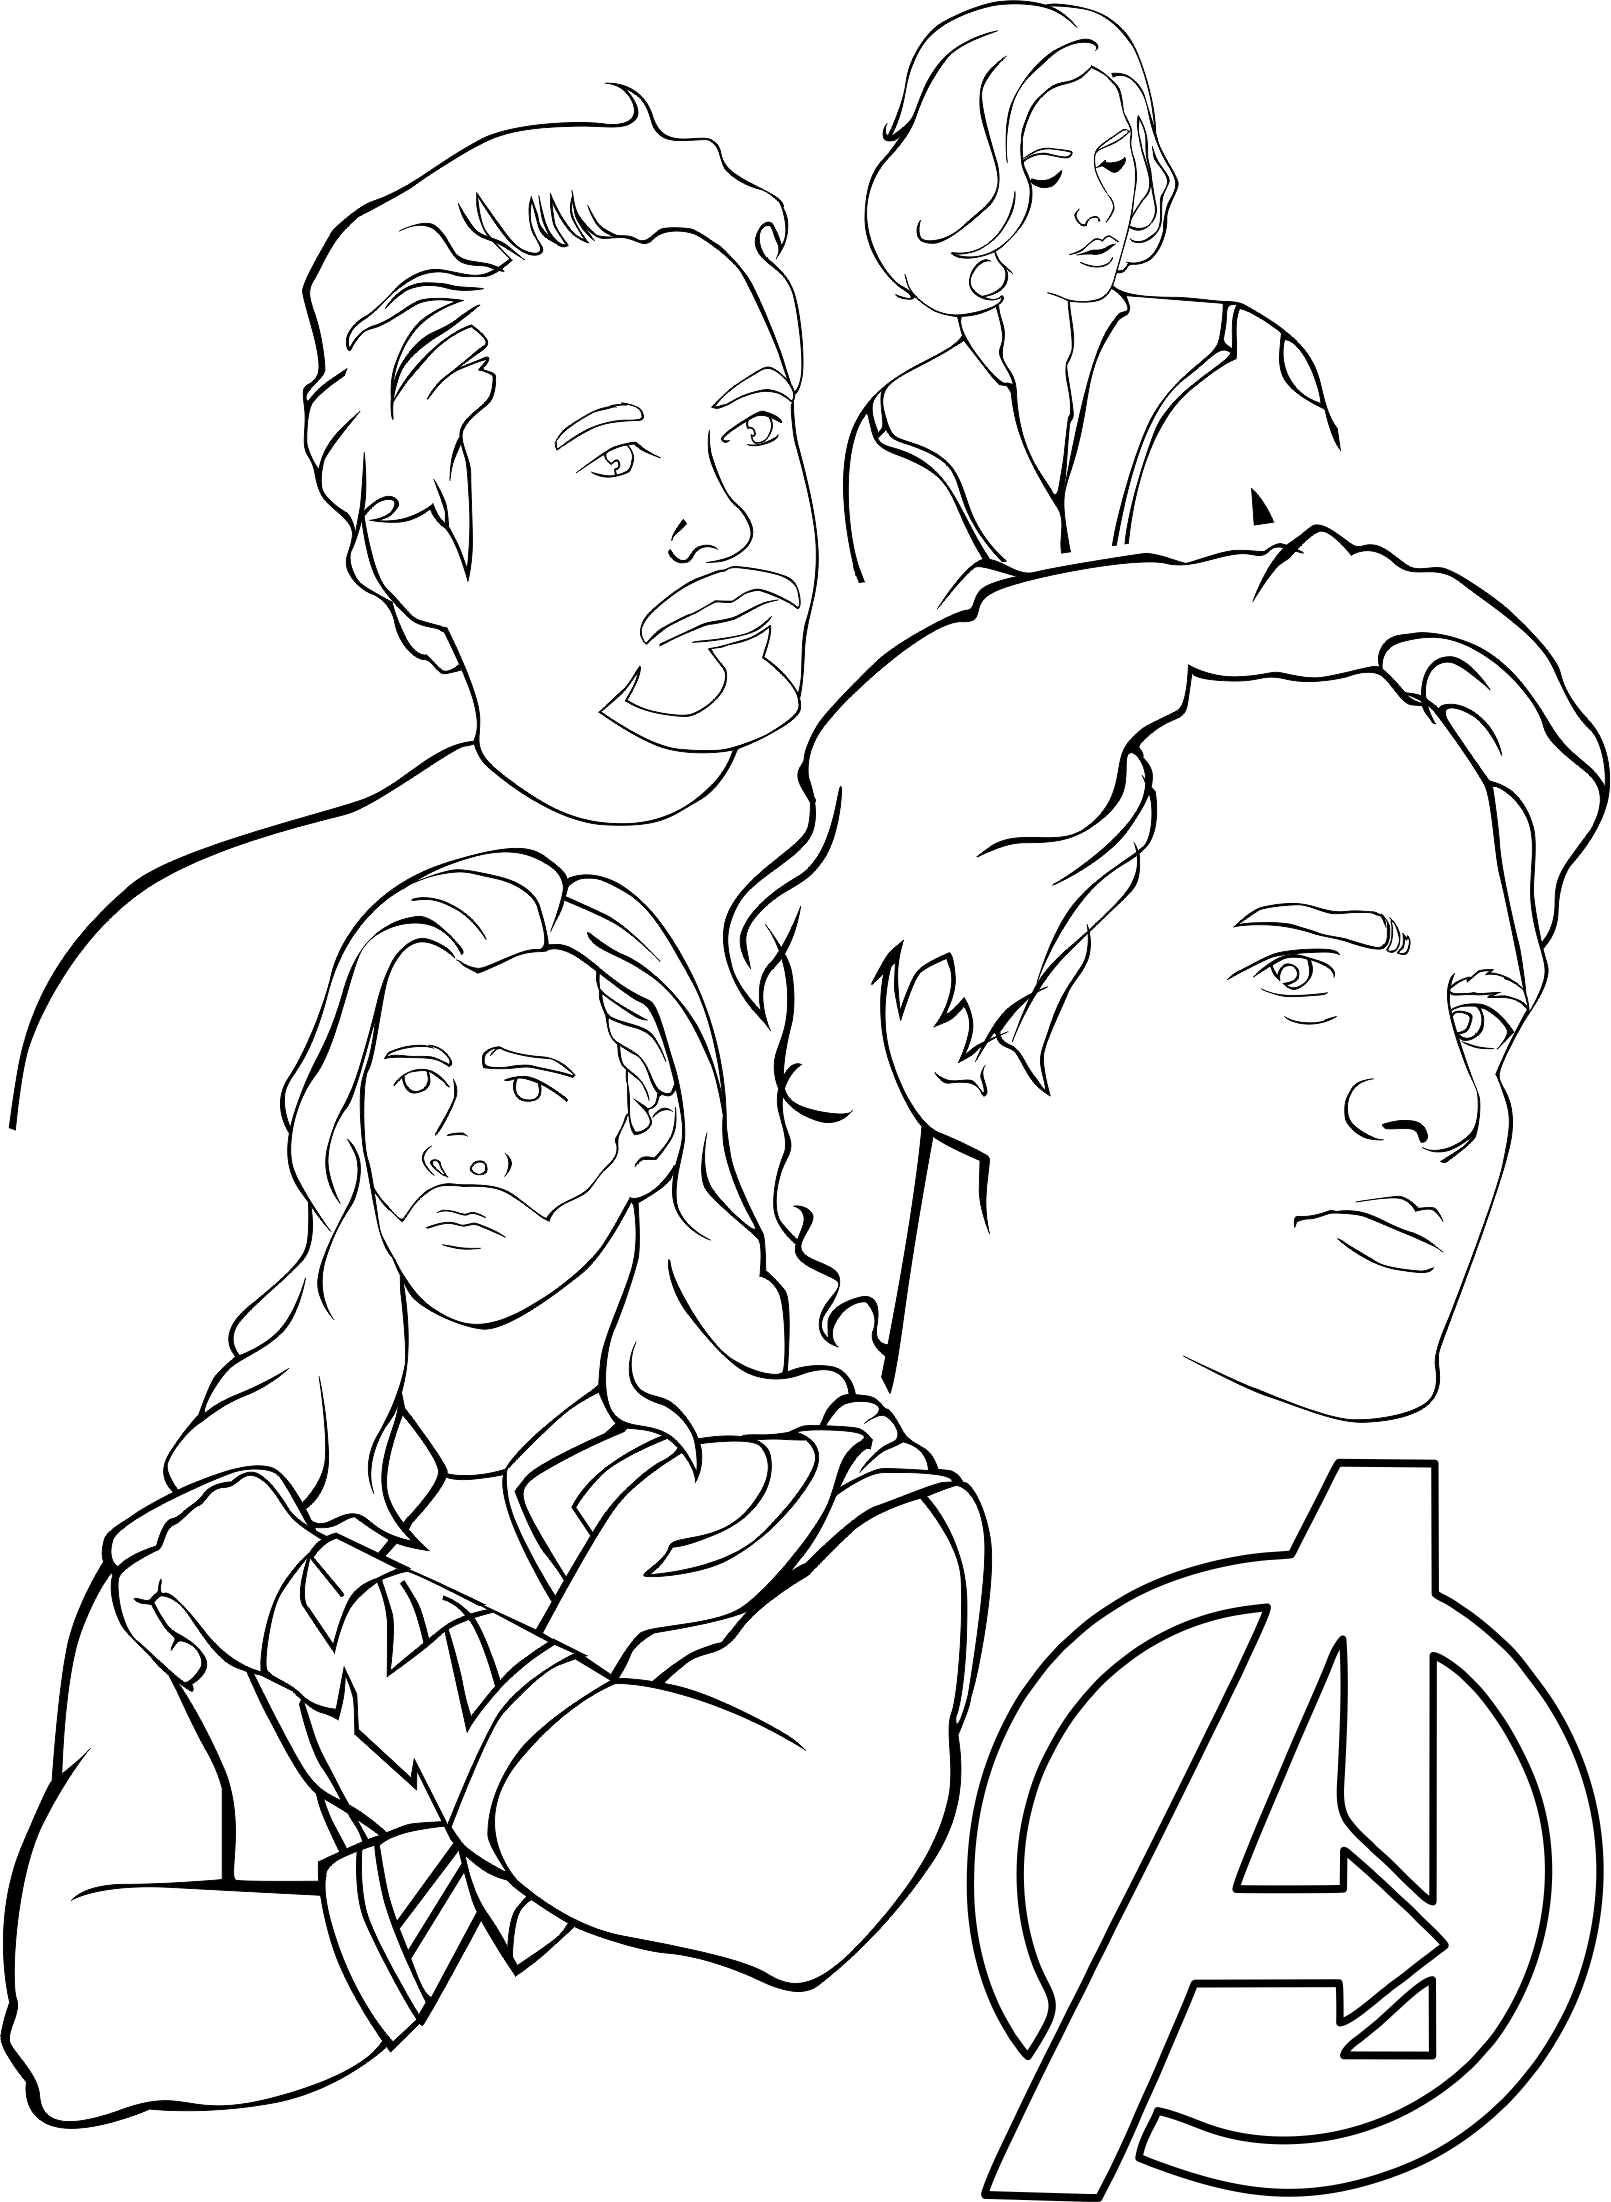 avenger coloring page avengers coloring pages 360coloringpages page coloring avenger